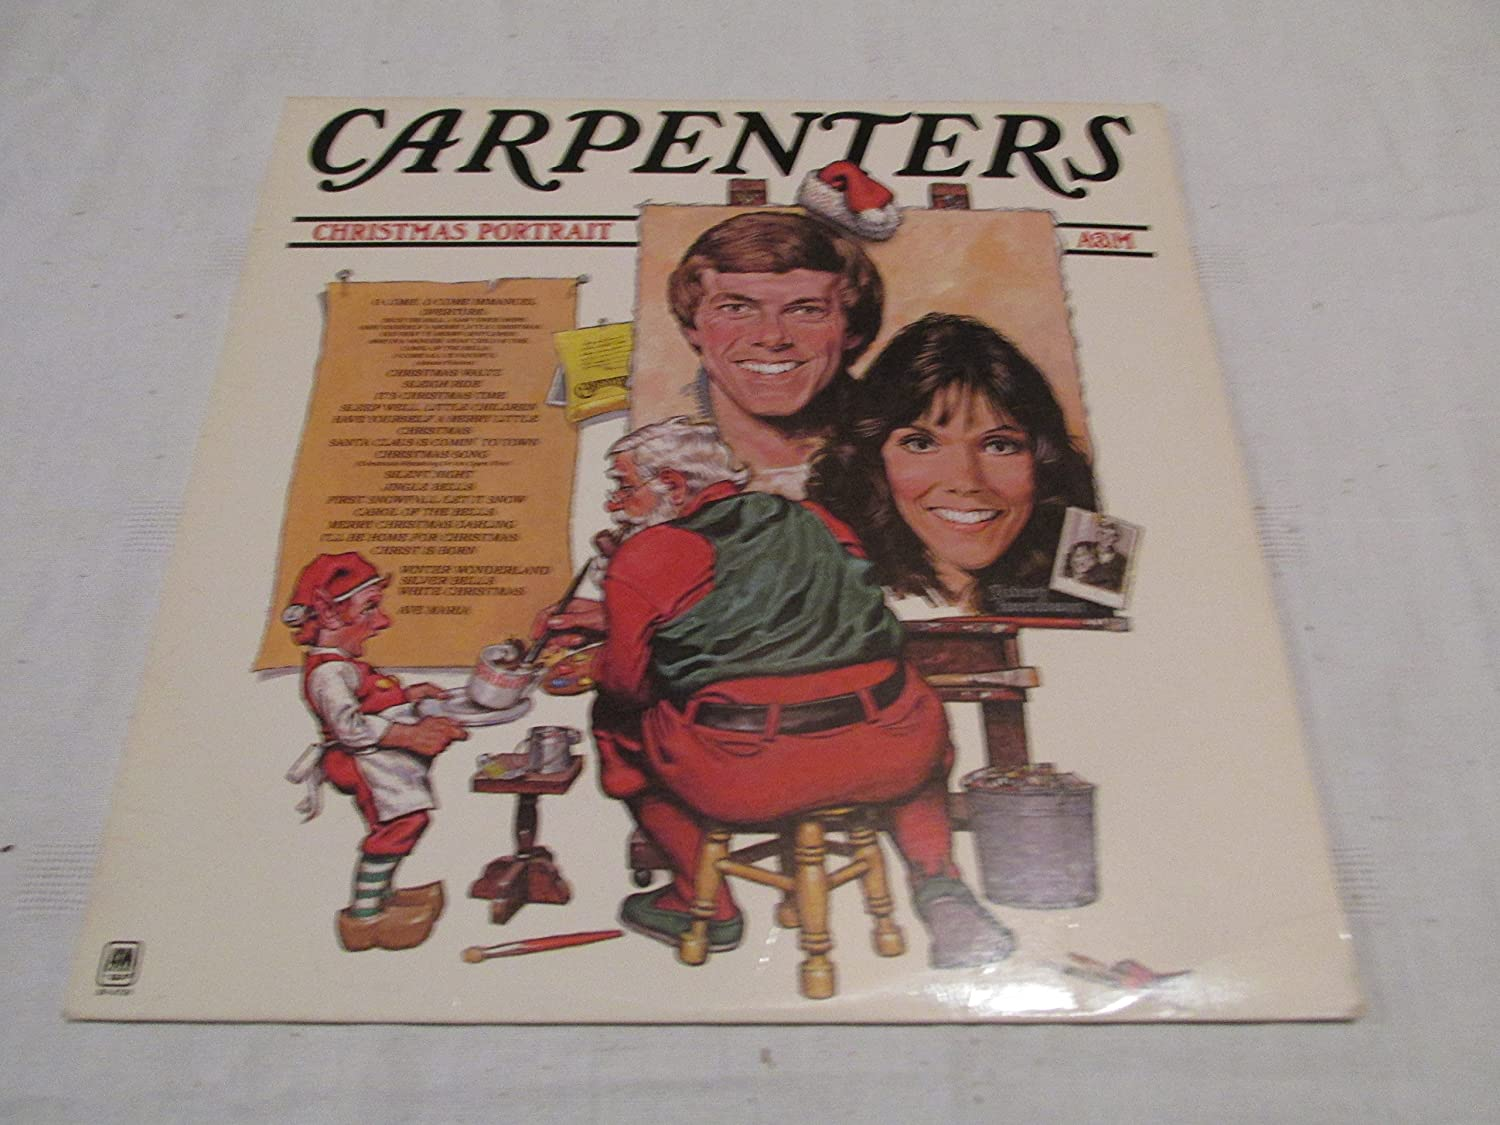 Carpenters - Christmas Portrait - Amazon.com Music